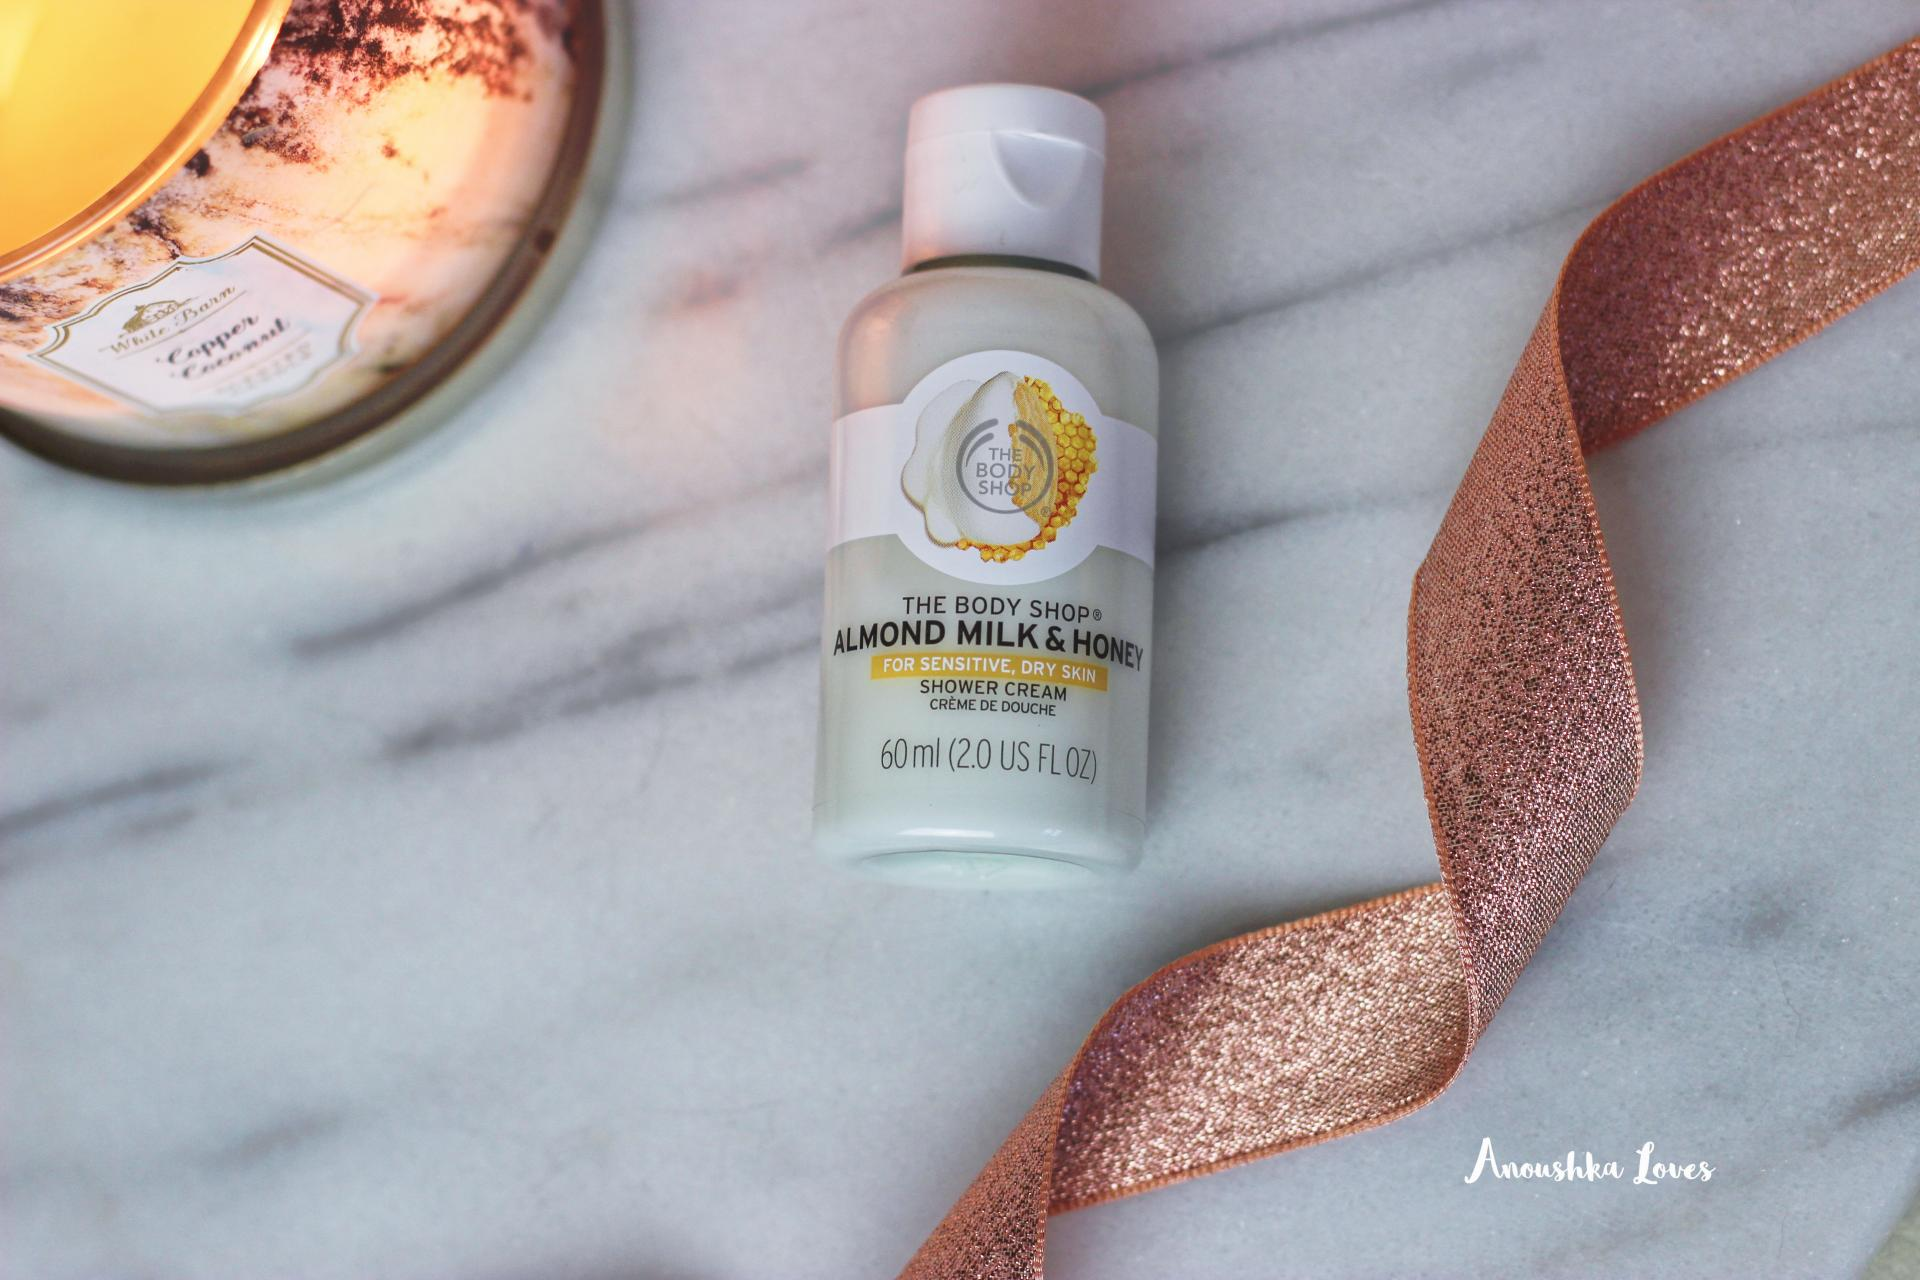 The Body Shop Almond Milk and Honey Collection